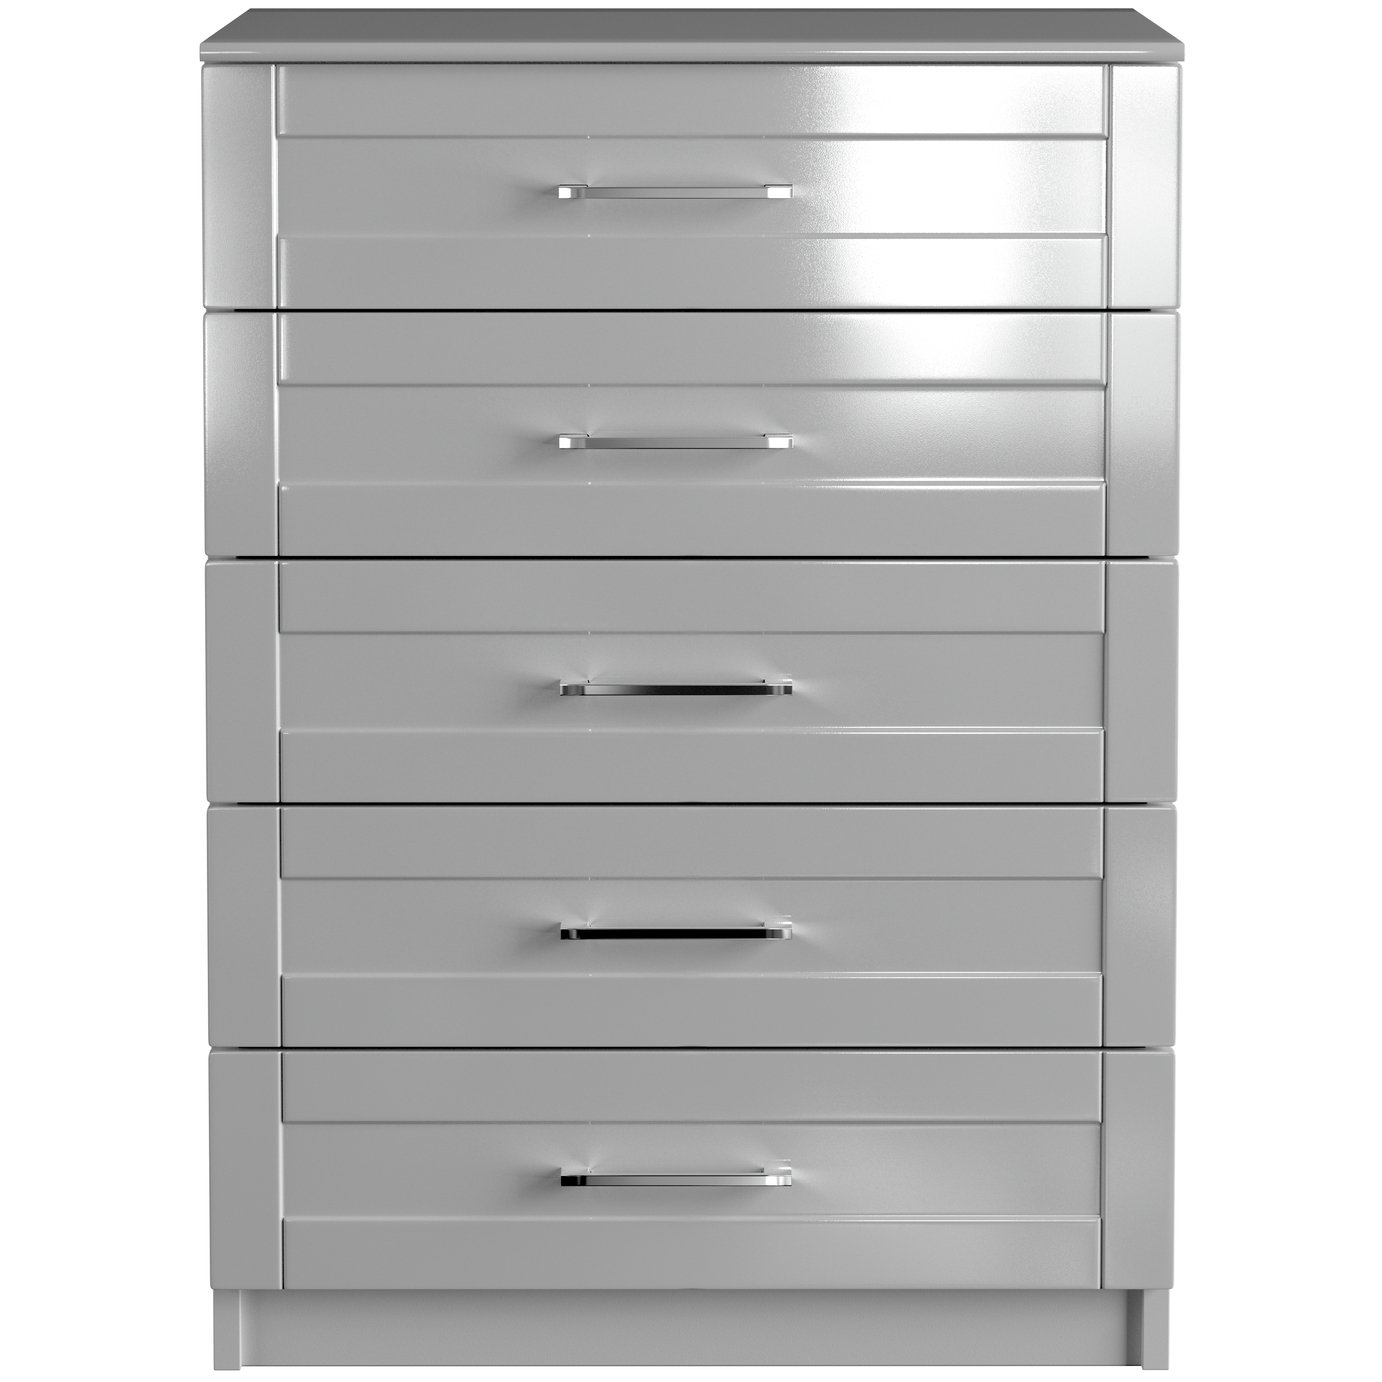 One Call Colby Gloss 5 Drawer Chest of Drawers - Grey